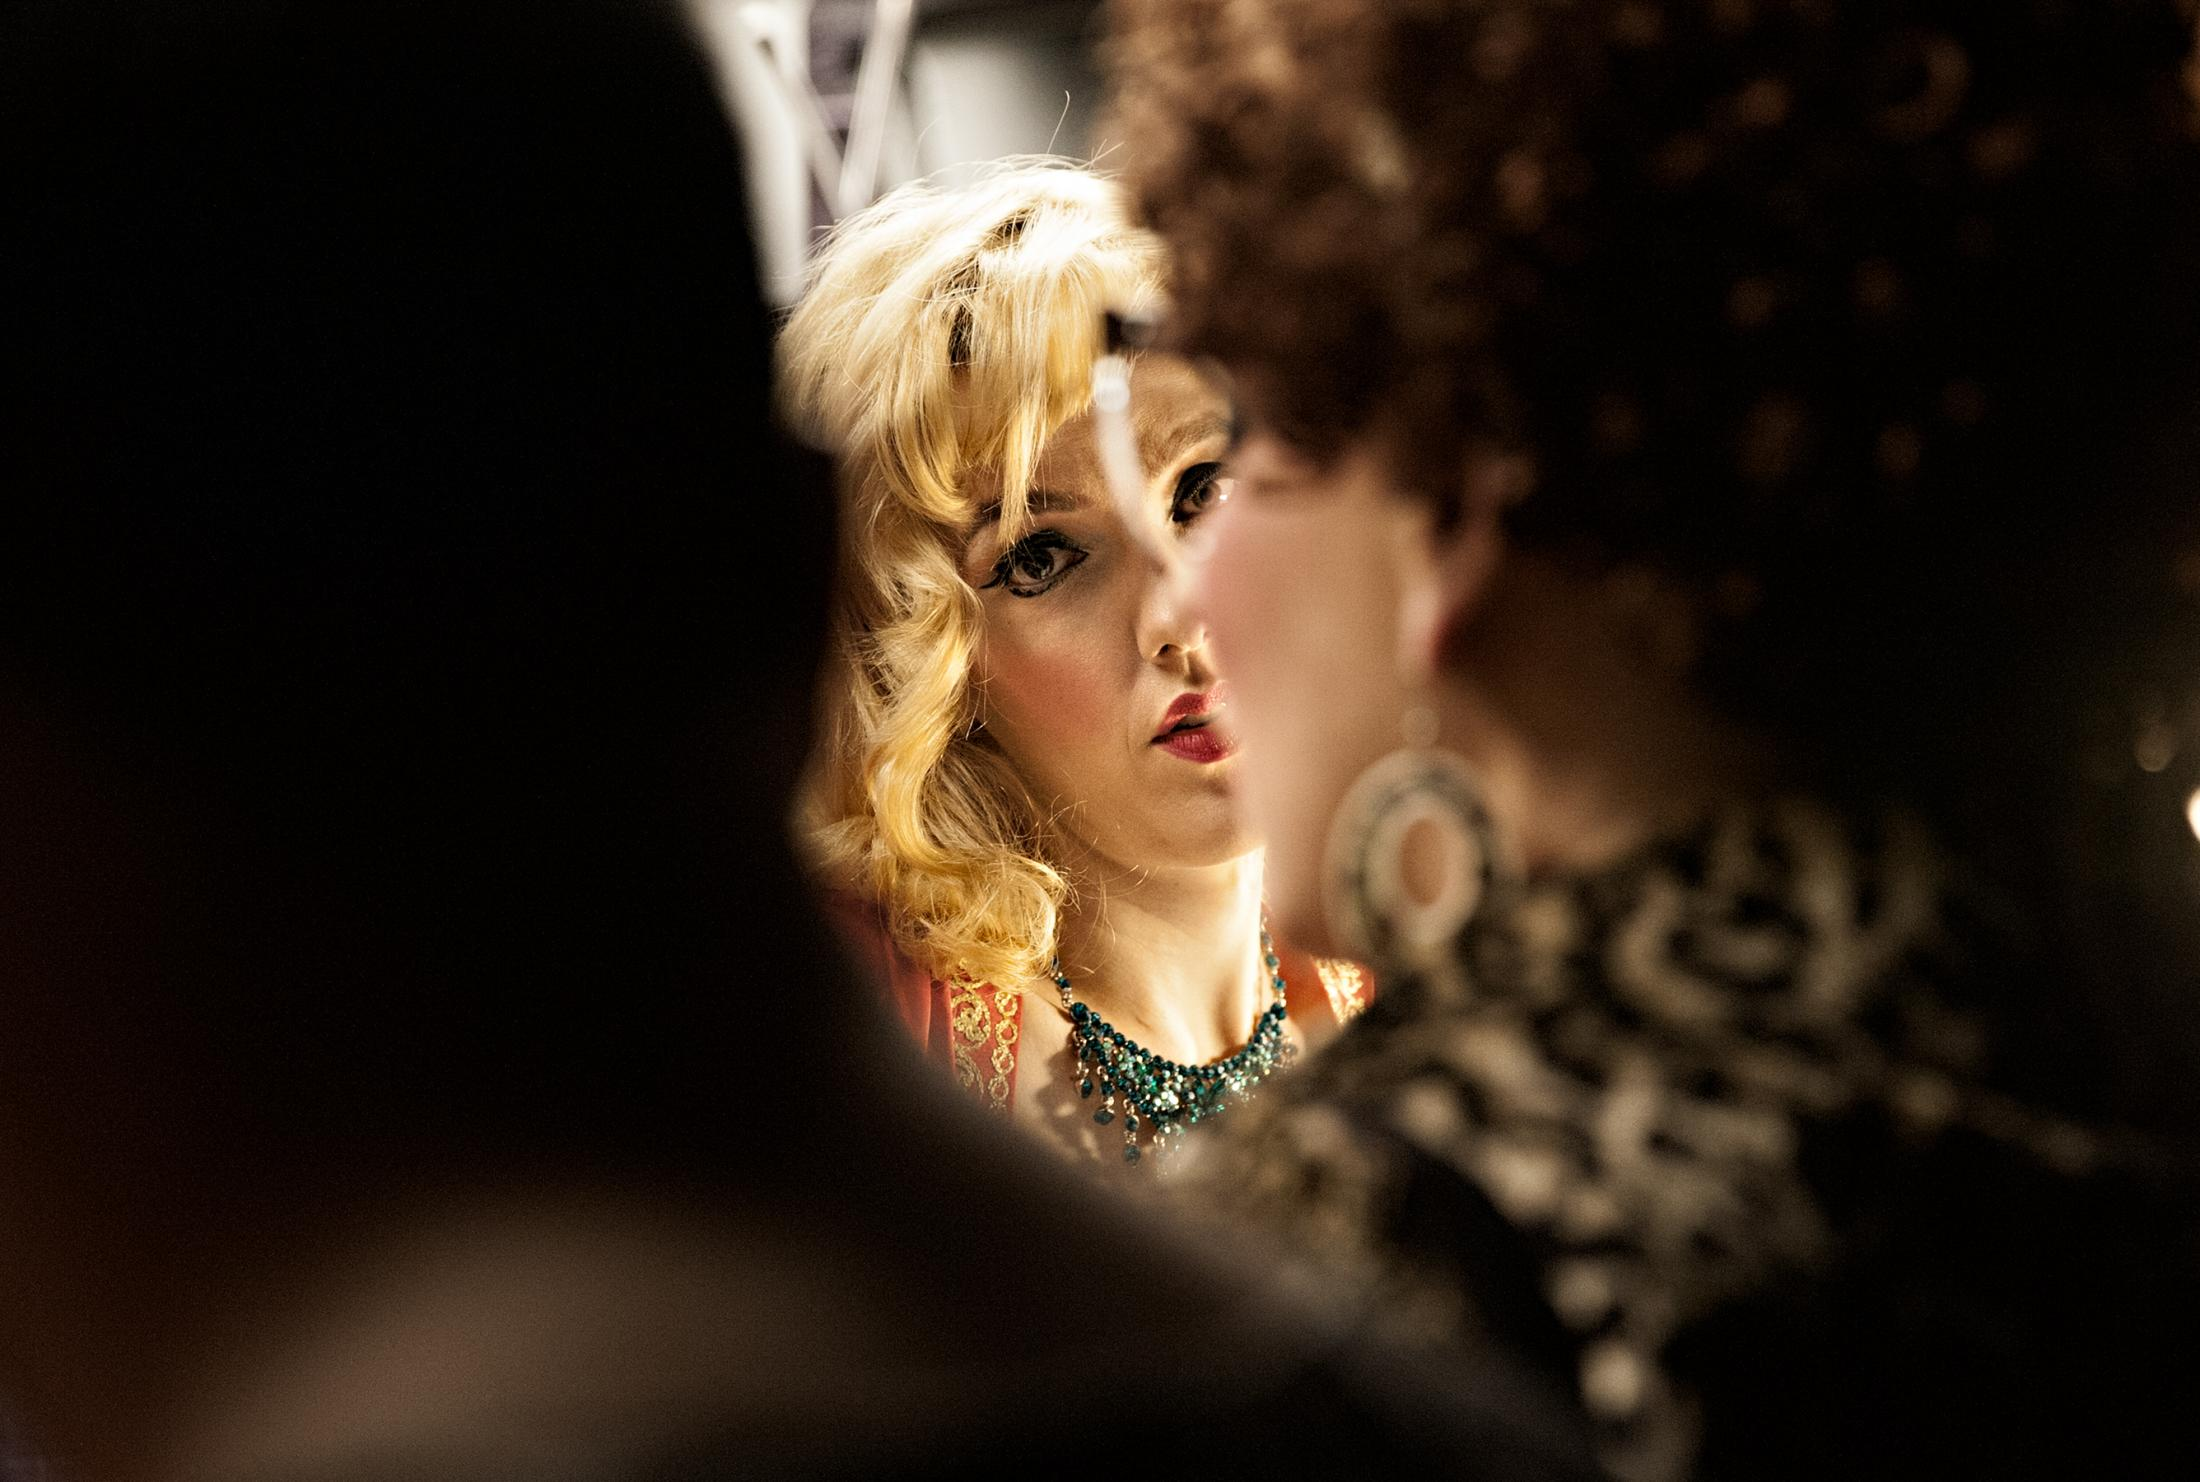 Red Hot Annie listens to a cast member while preparing for her show in the changing room.